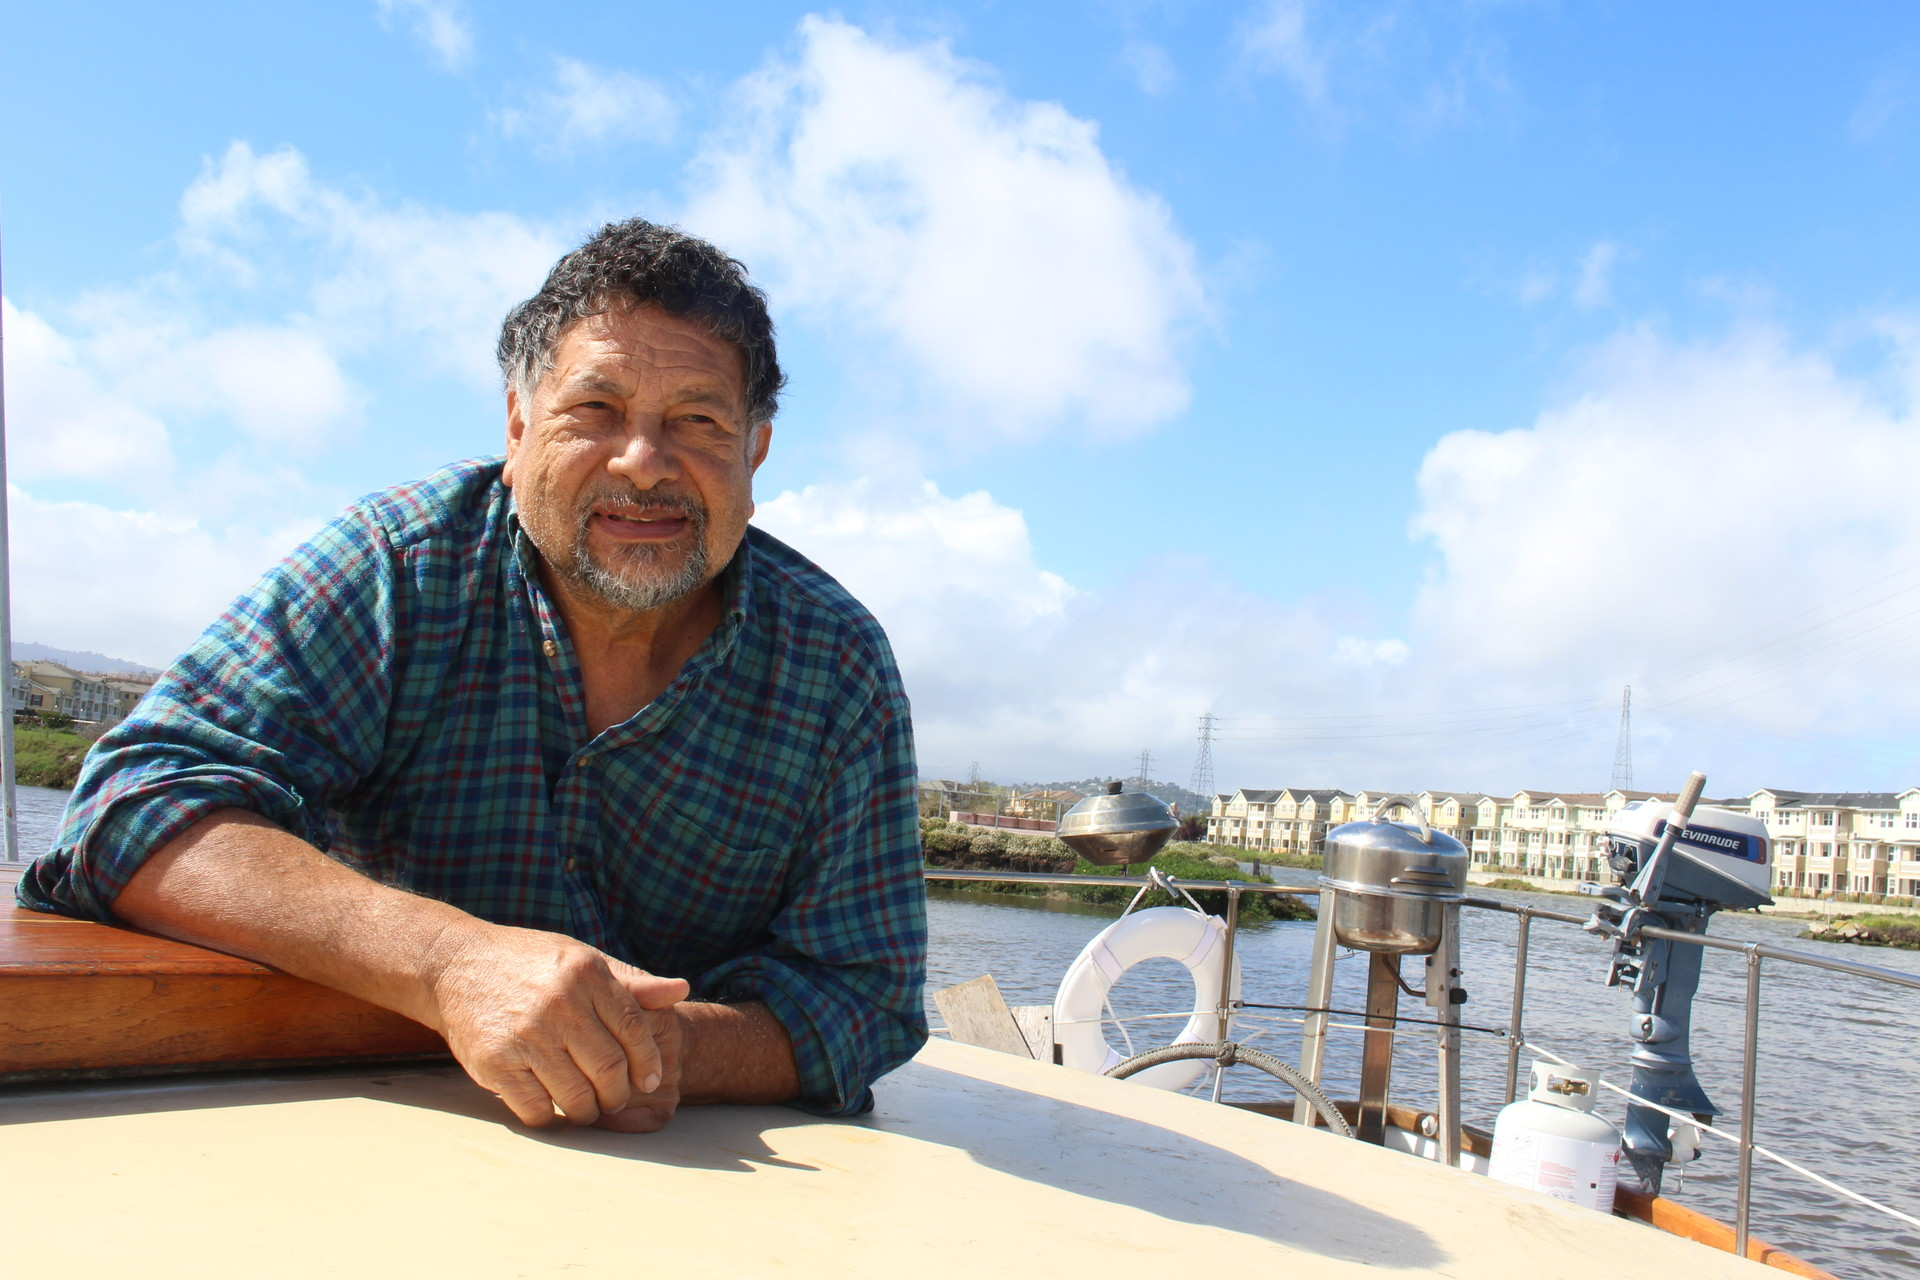 Emilio Diaz, 71, at the liveaboard he shares with his 20-year old son. Diaz, a Vietnam veteran, says he has stayed at Docktown for more than 15 years because he enjoys the community.